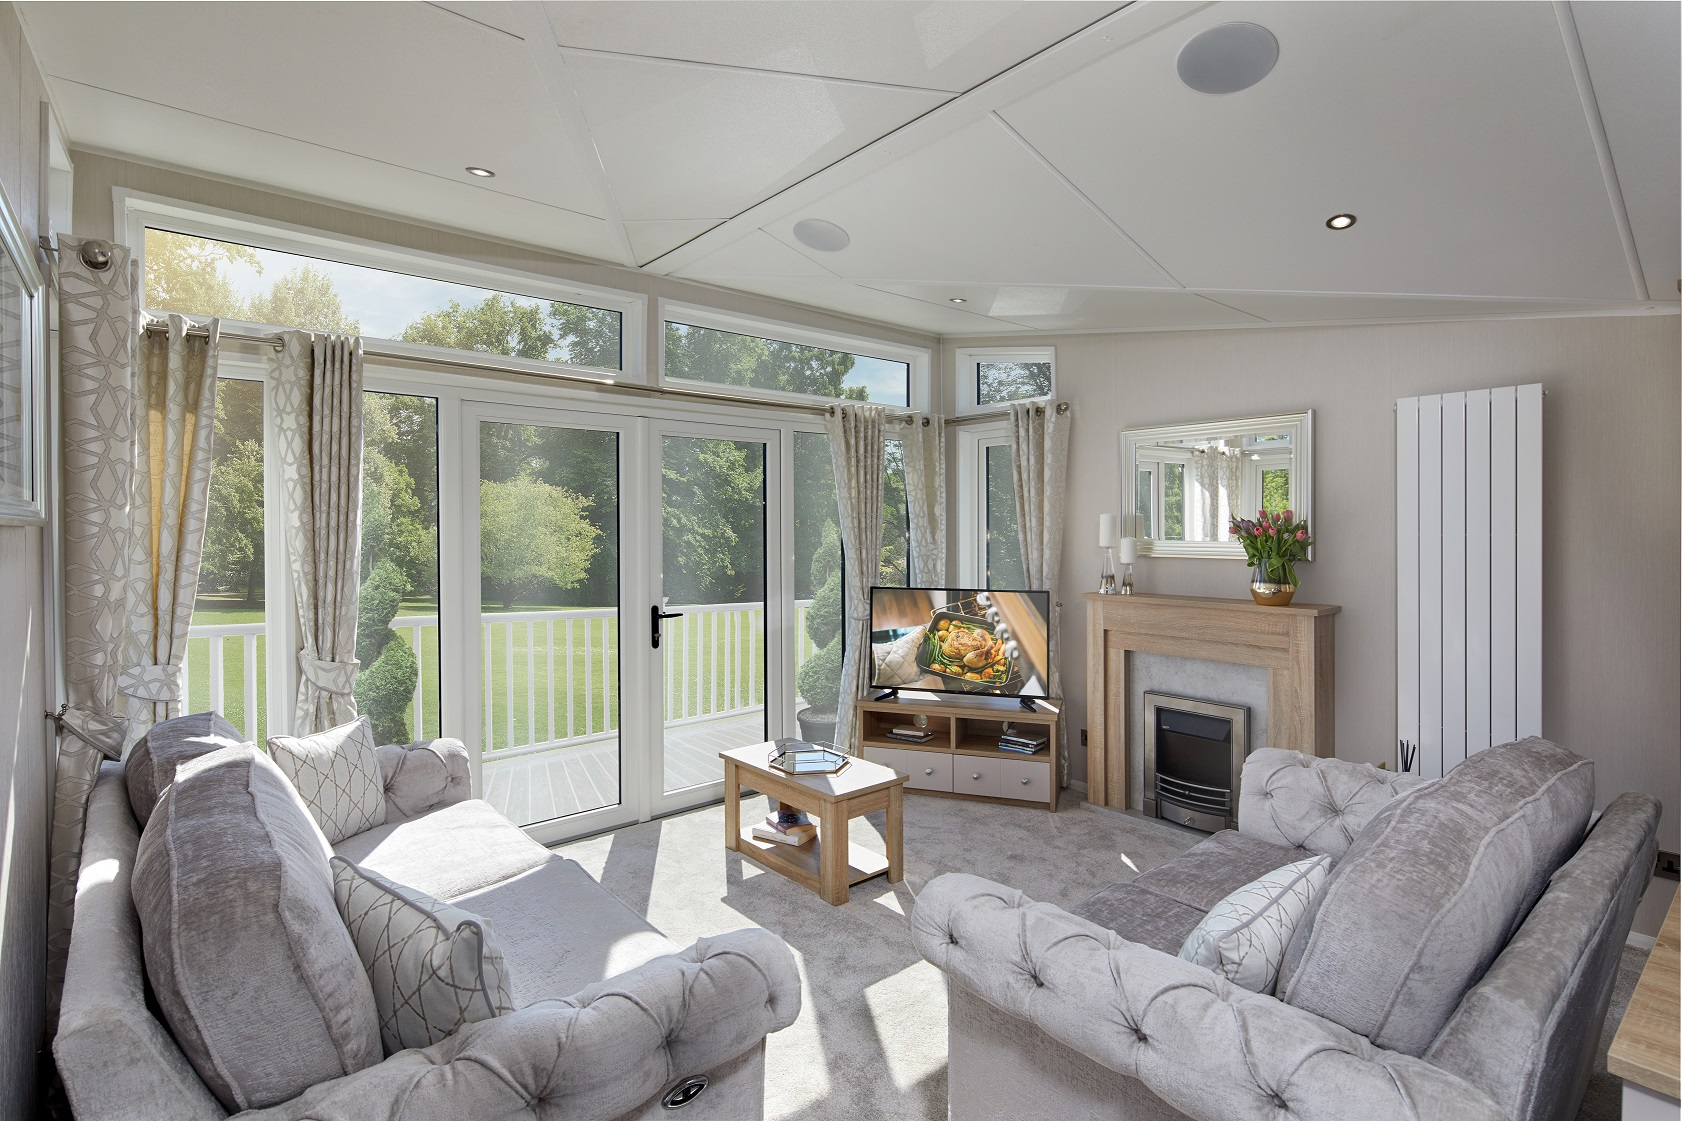 Willerby Vogue Classique: New Static Caravans and Holiday Homes for Sale, Clifton, Morpeth Large Image 1